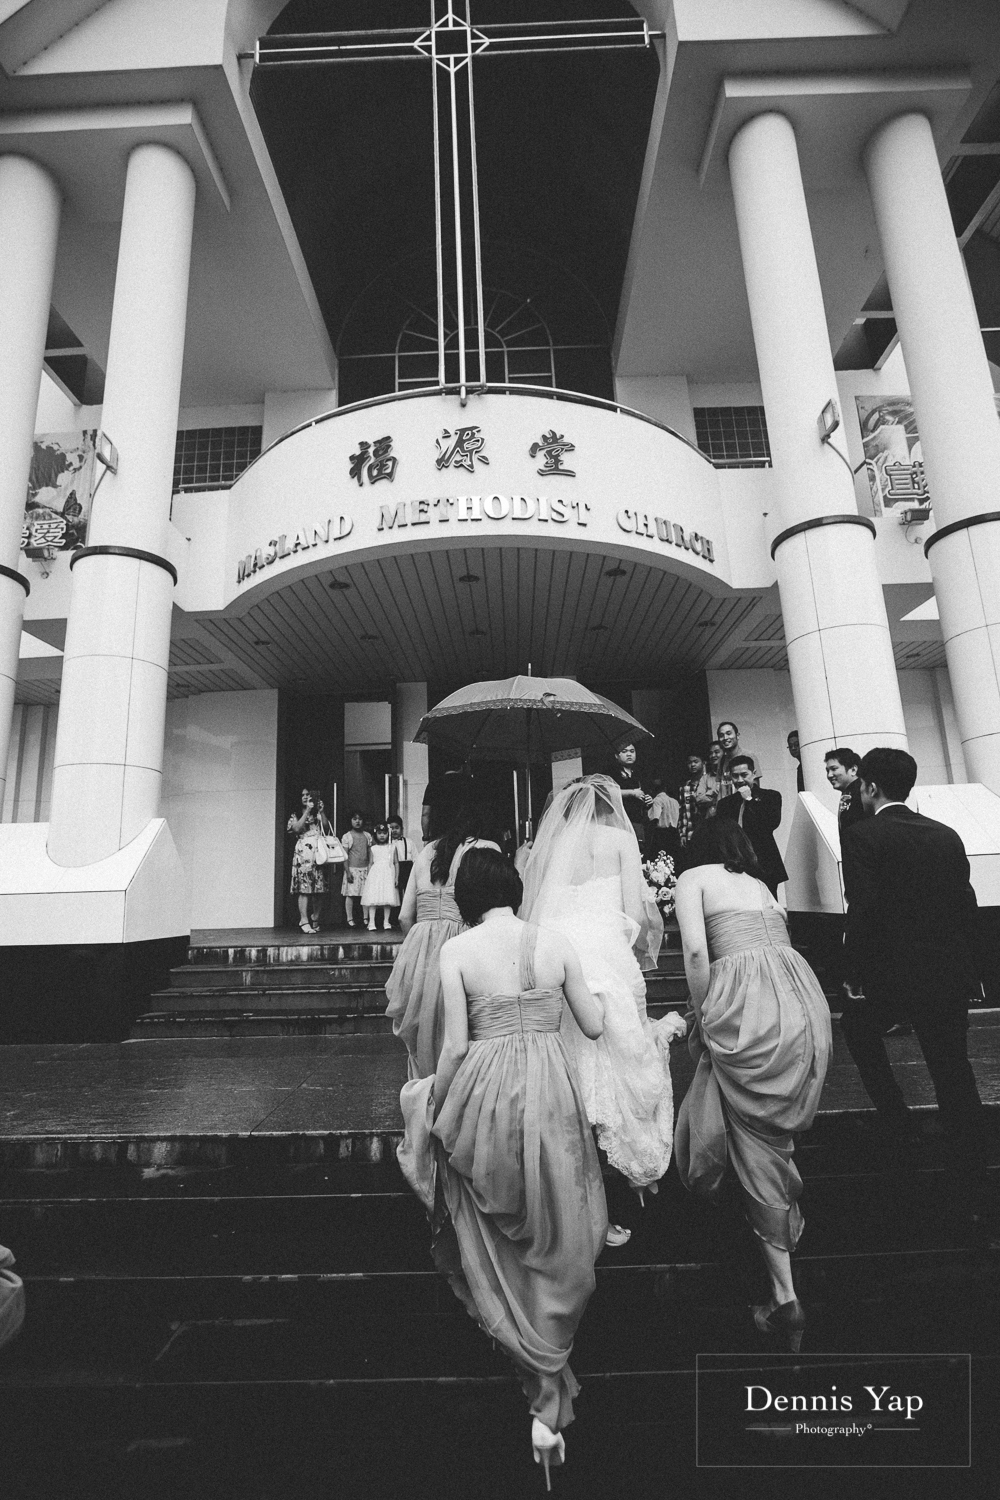 jason ying church wedding kingwood sibu paper cranes dennis yap photography-28.jpg